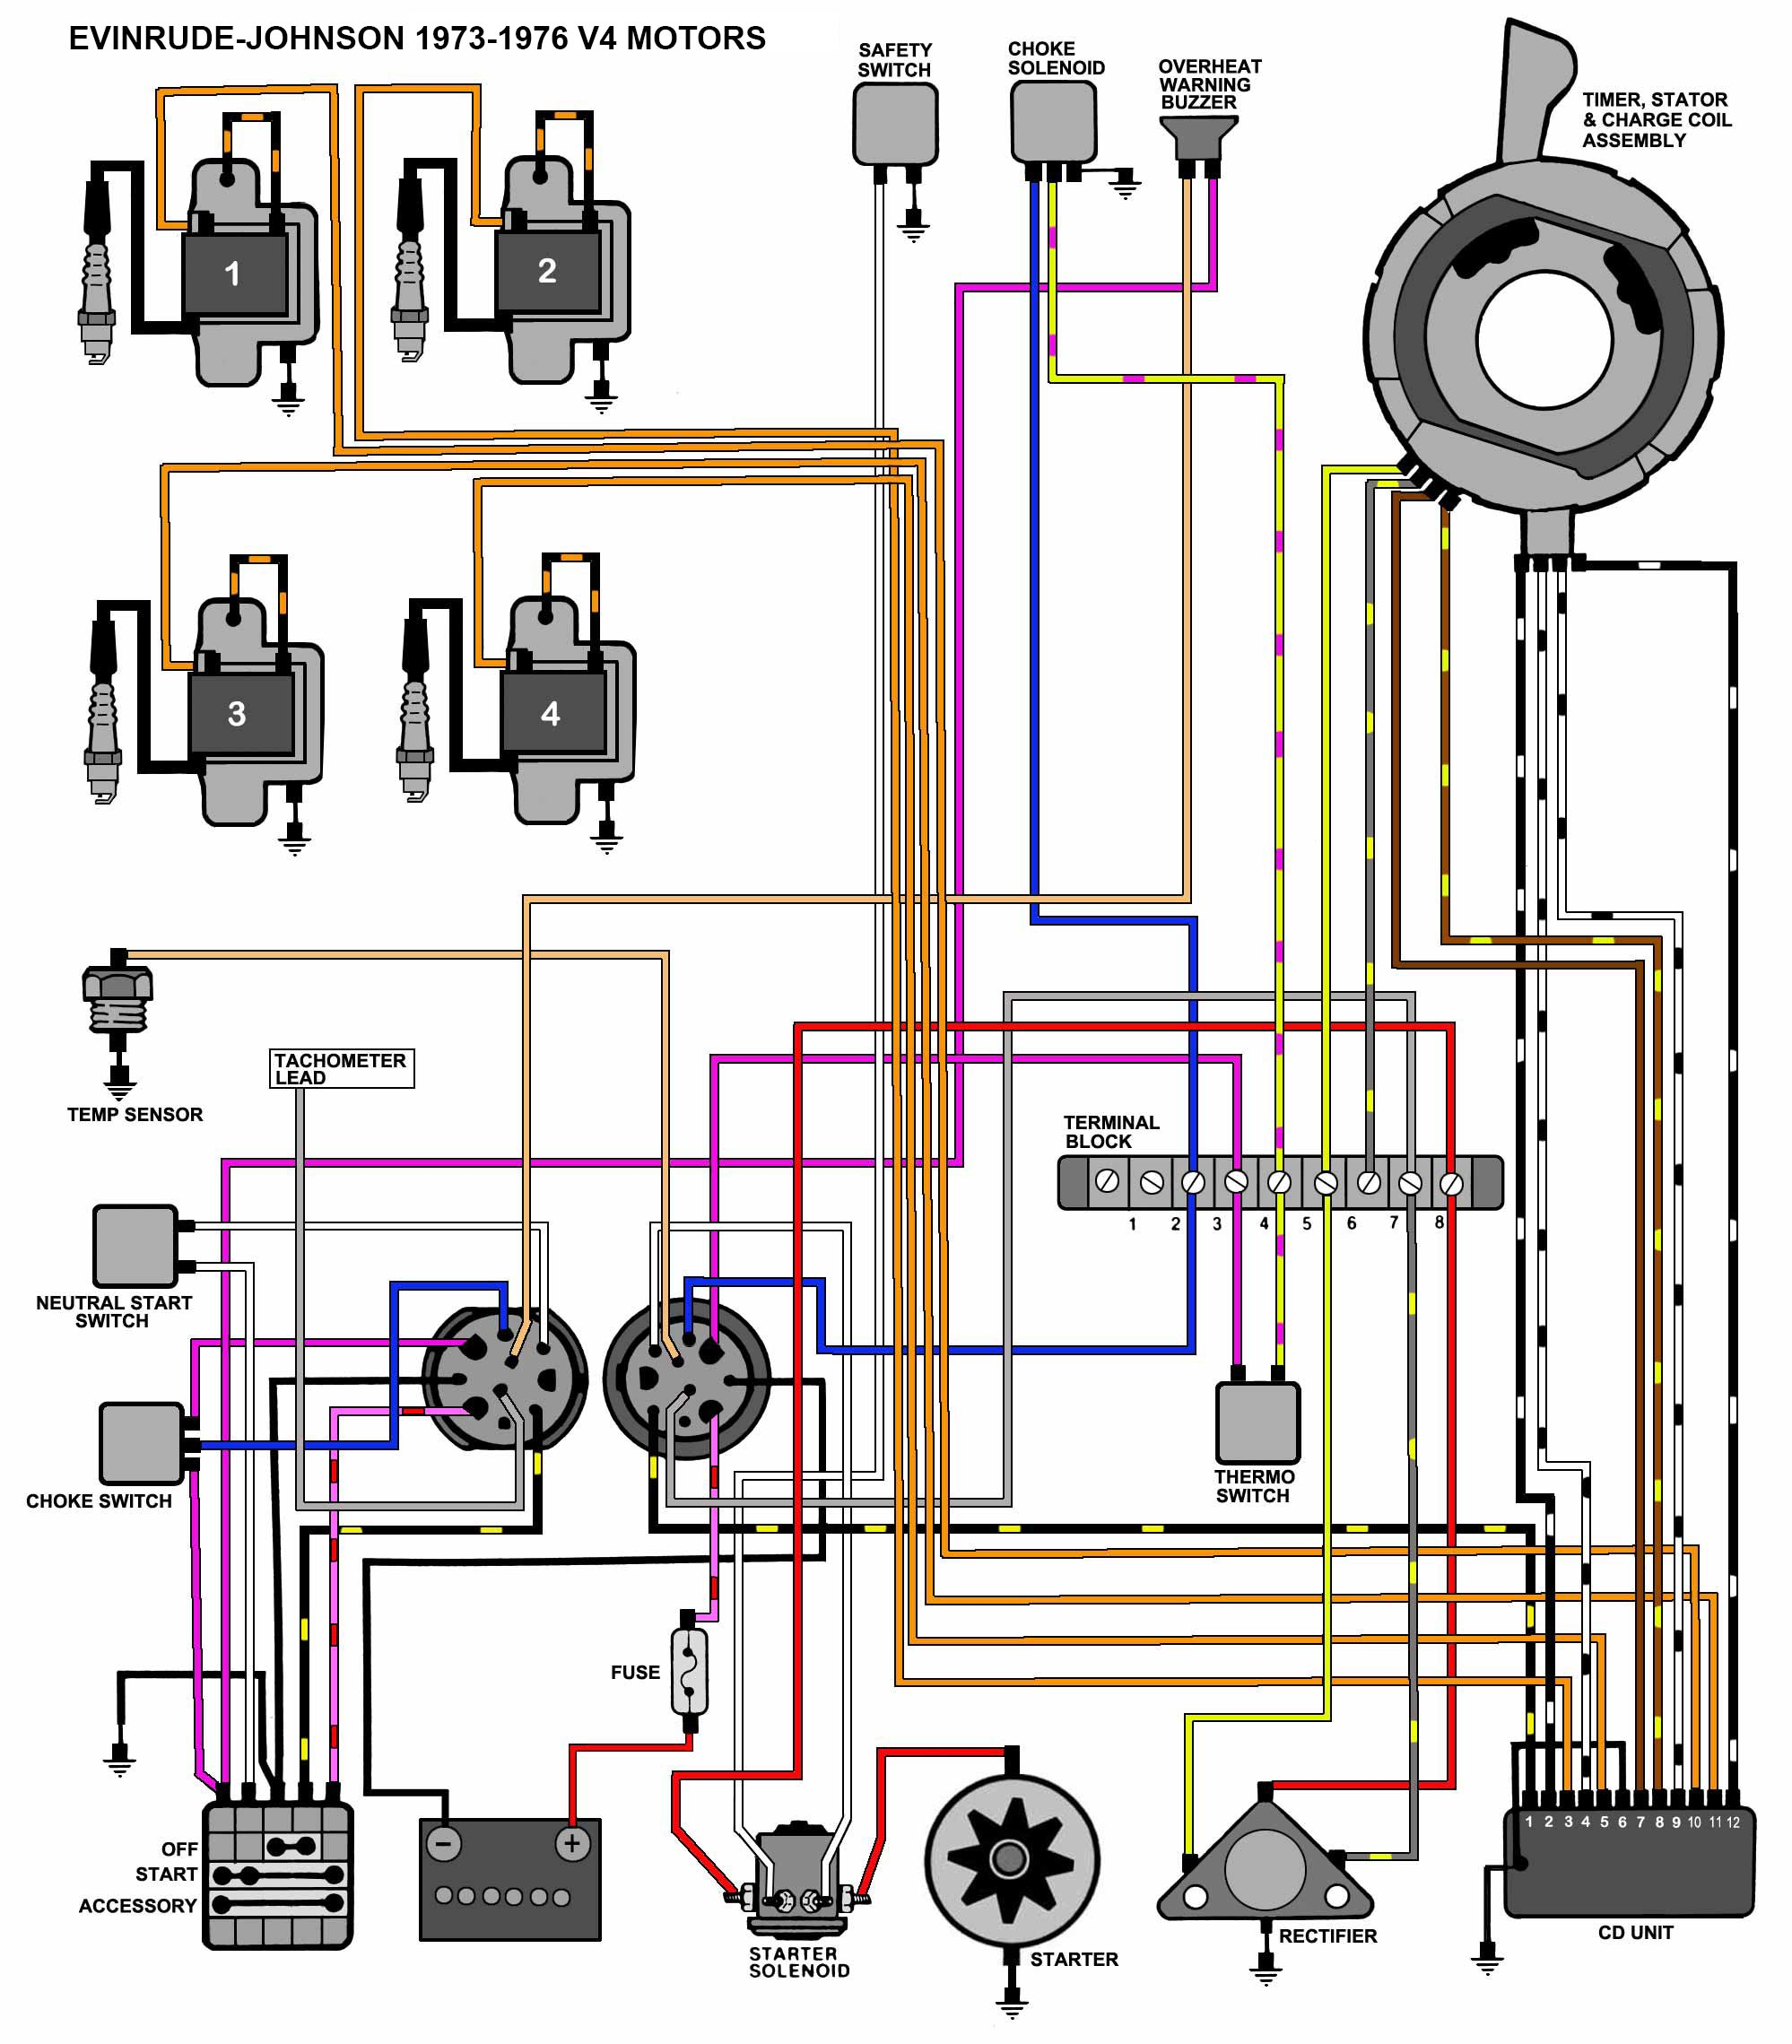 hight resolution of mercury outboard control wiring diagram 40 hp johnson on radio 1960 super sea horse 40 hp wiring harness page 1 iboats boating